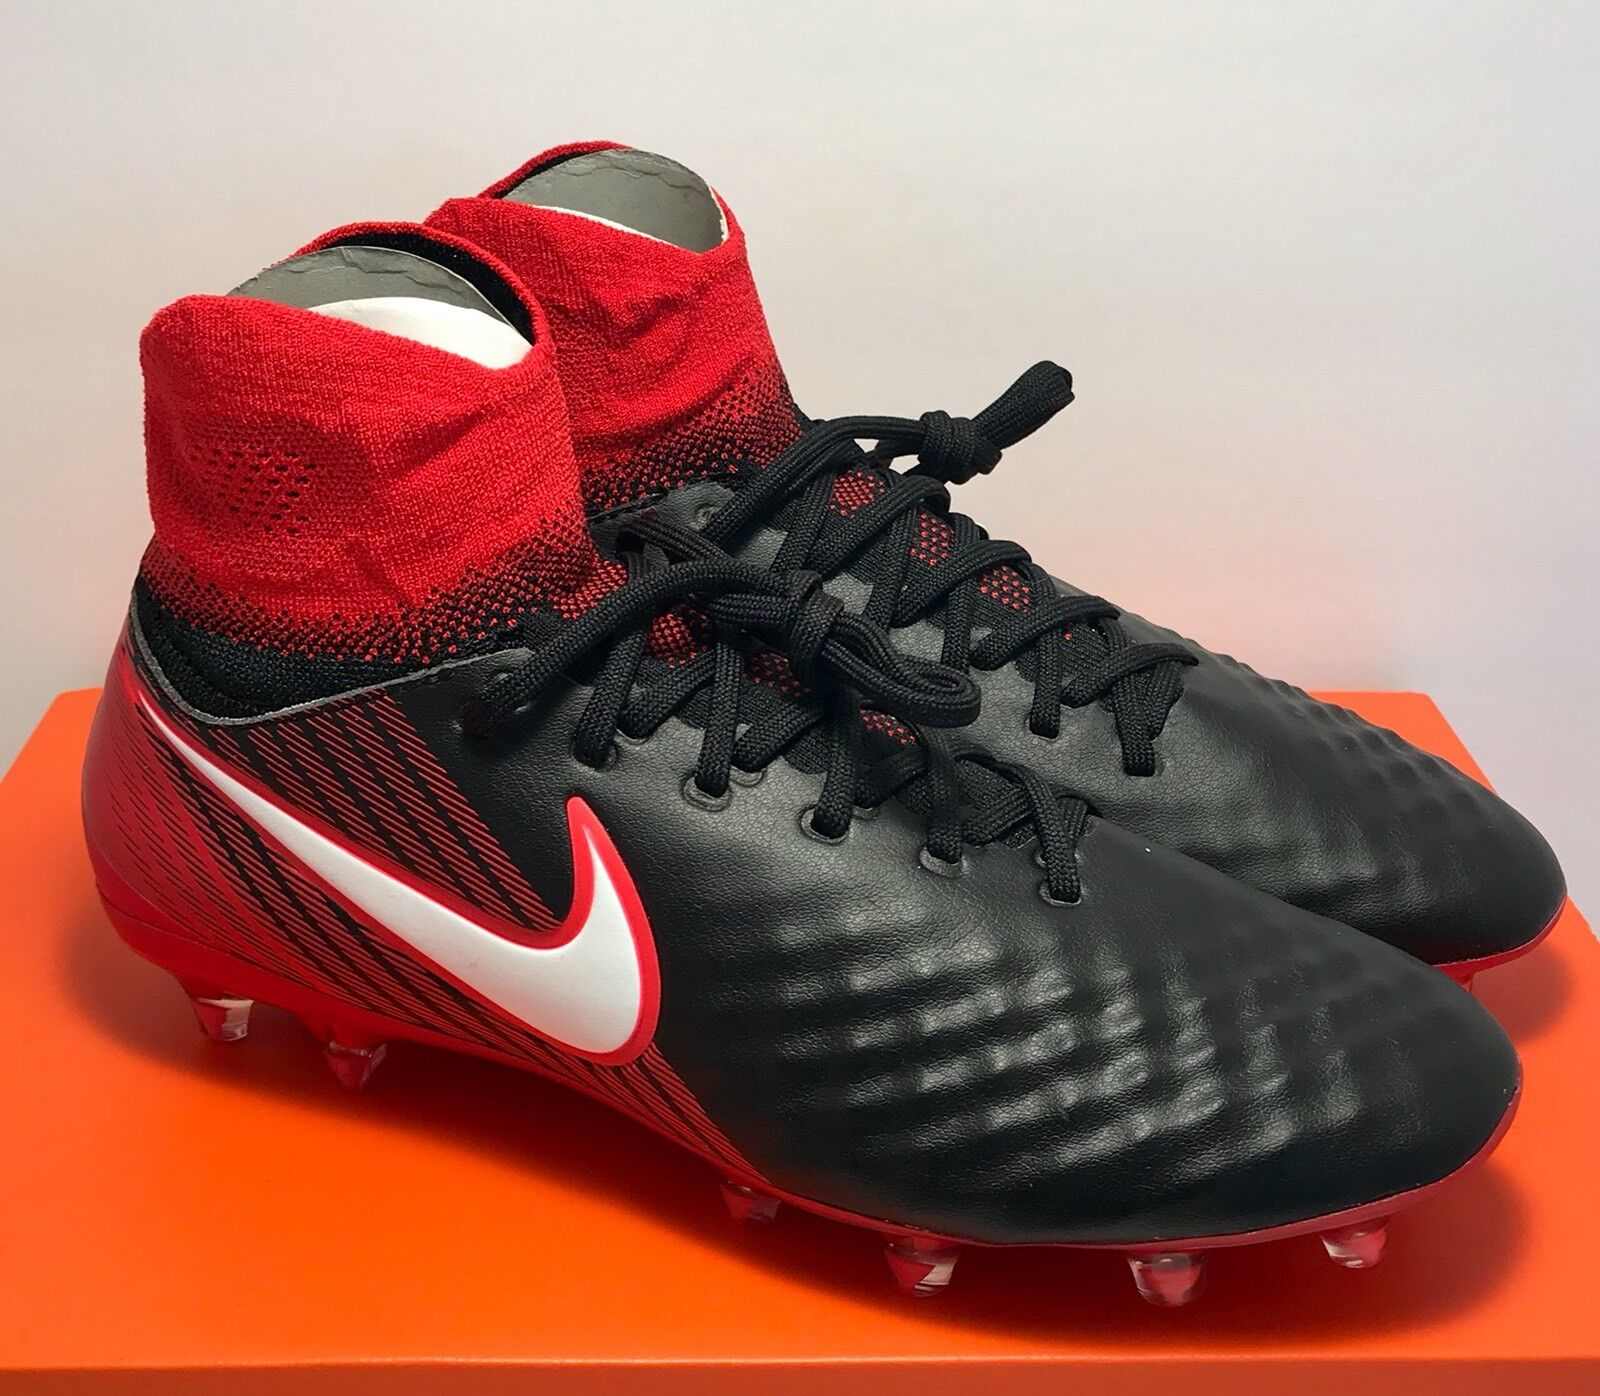 Nike Mens Size 7 Magista Orden II Fire & Ice Soccer Cleats Boots  170